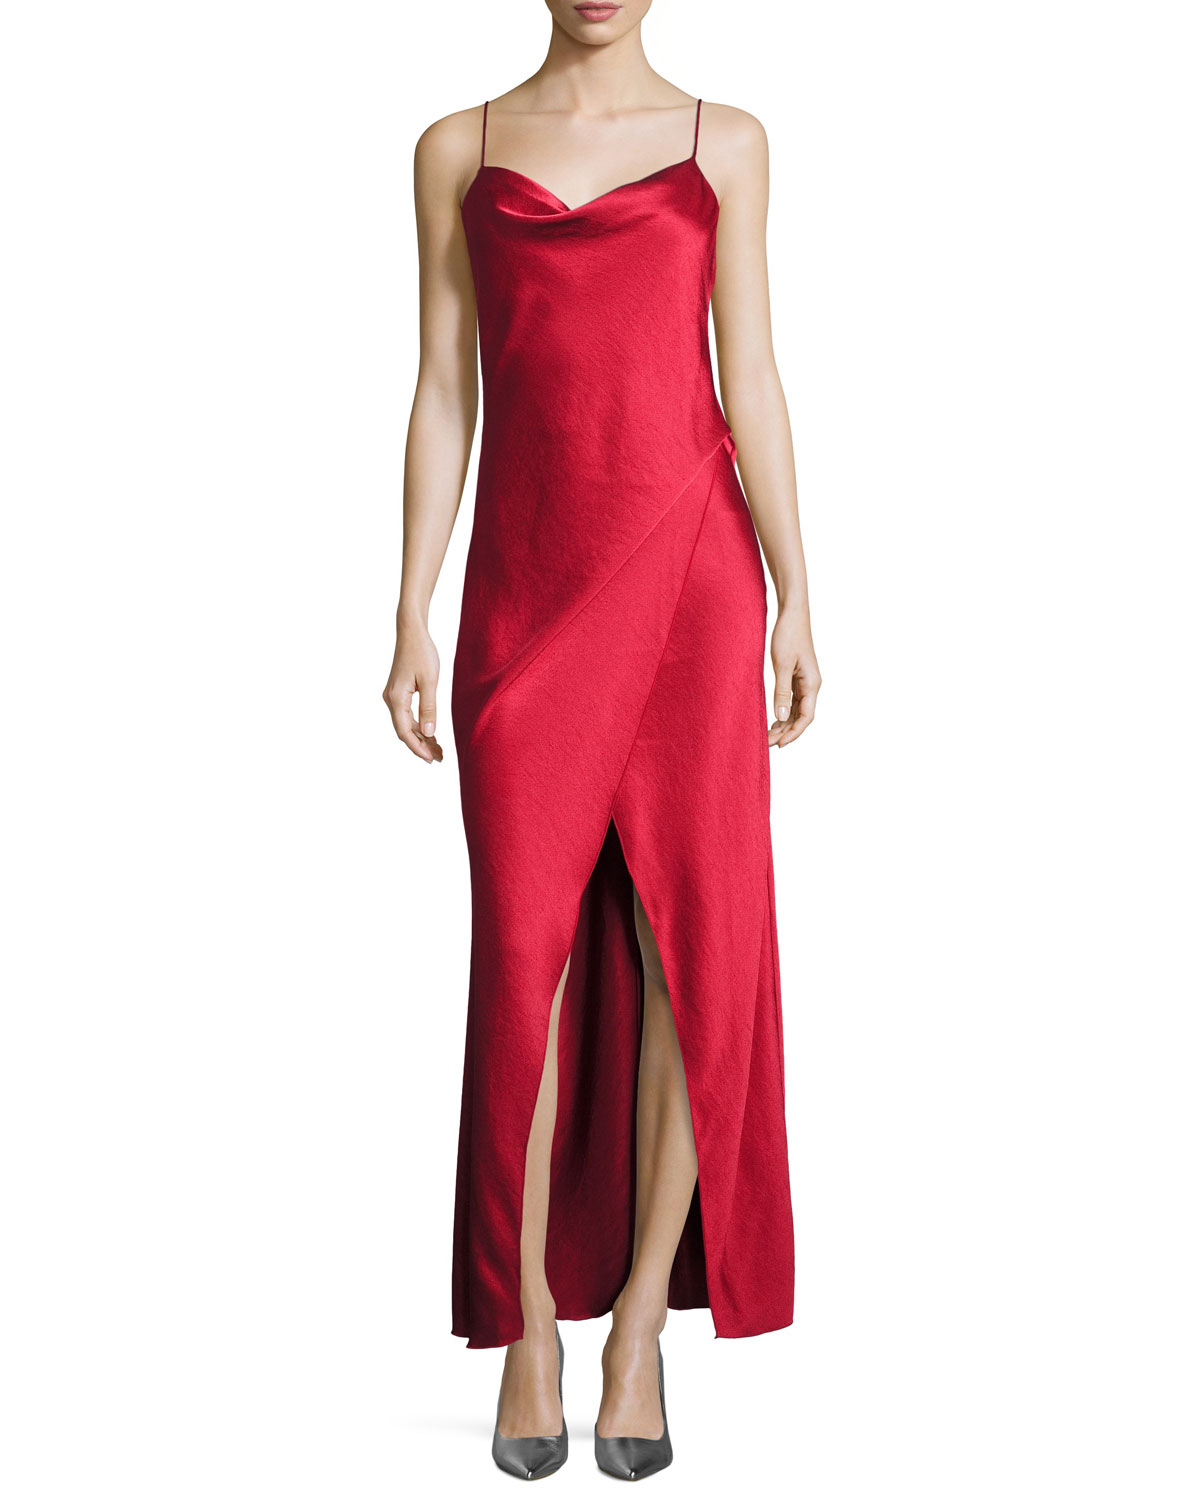 CAMILLA AND MARC Bowery Draped Satin Slip Gown, Mid Red   Neiman Marcus